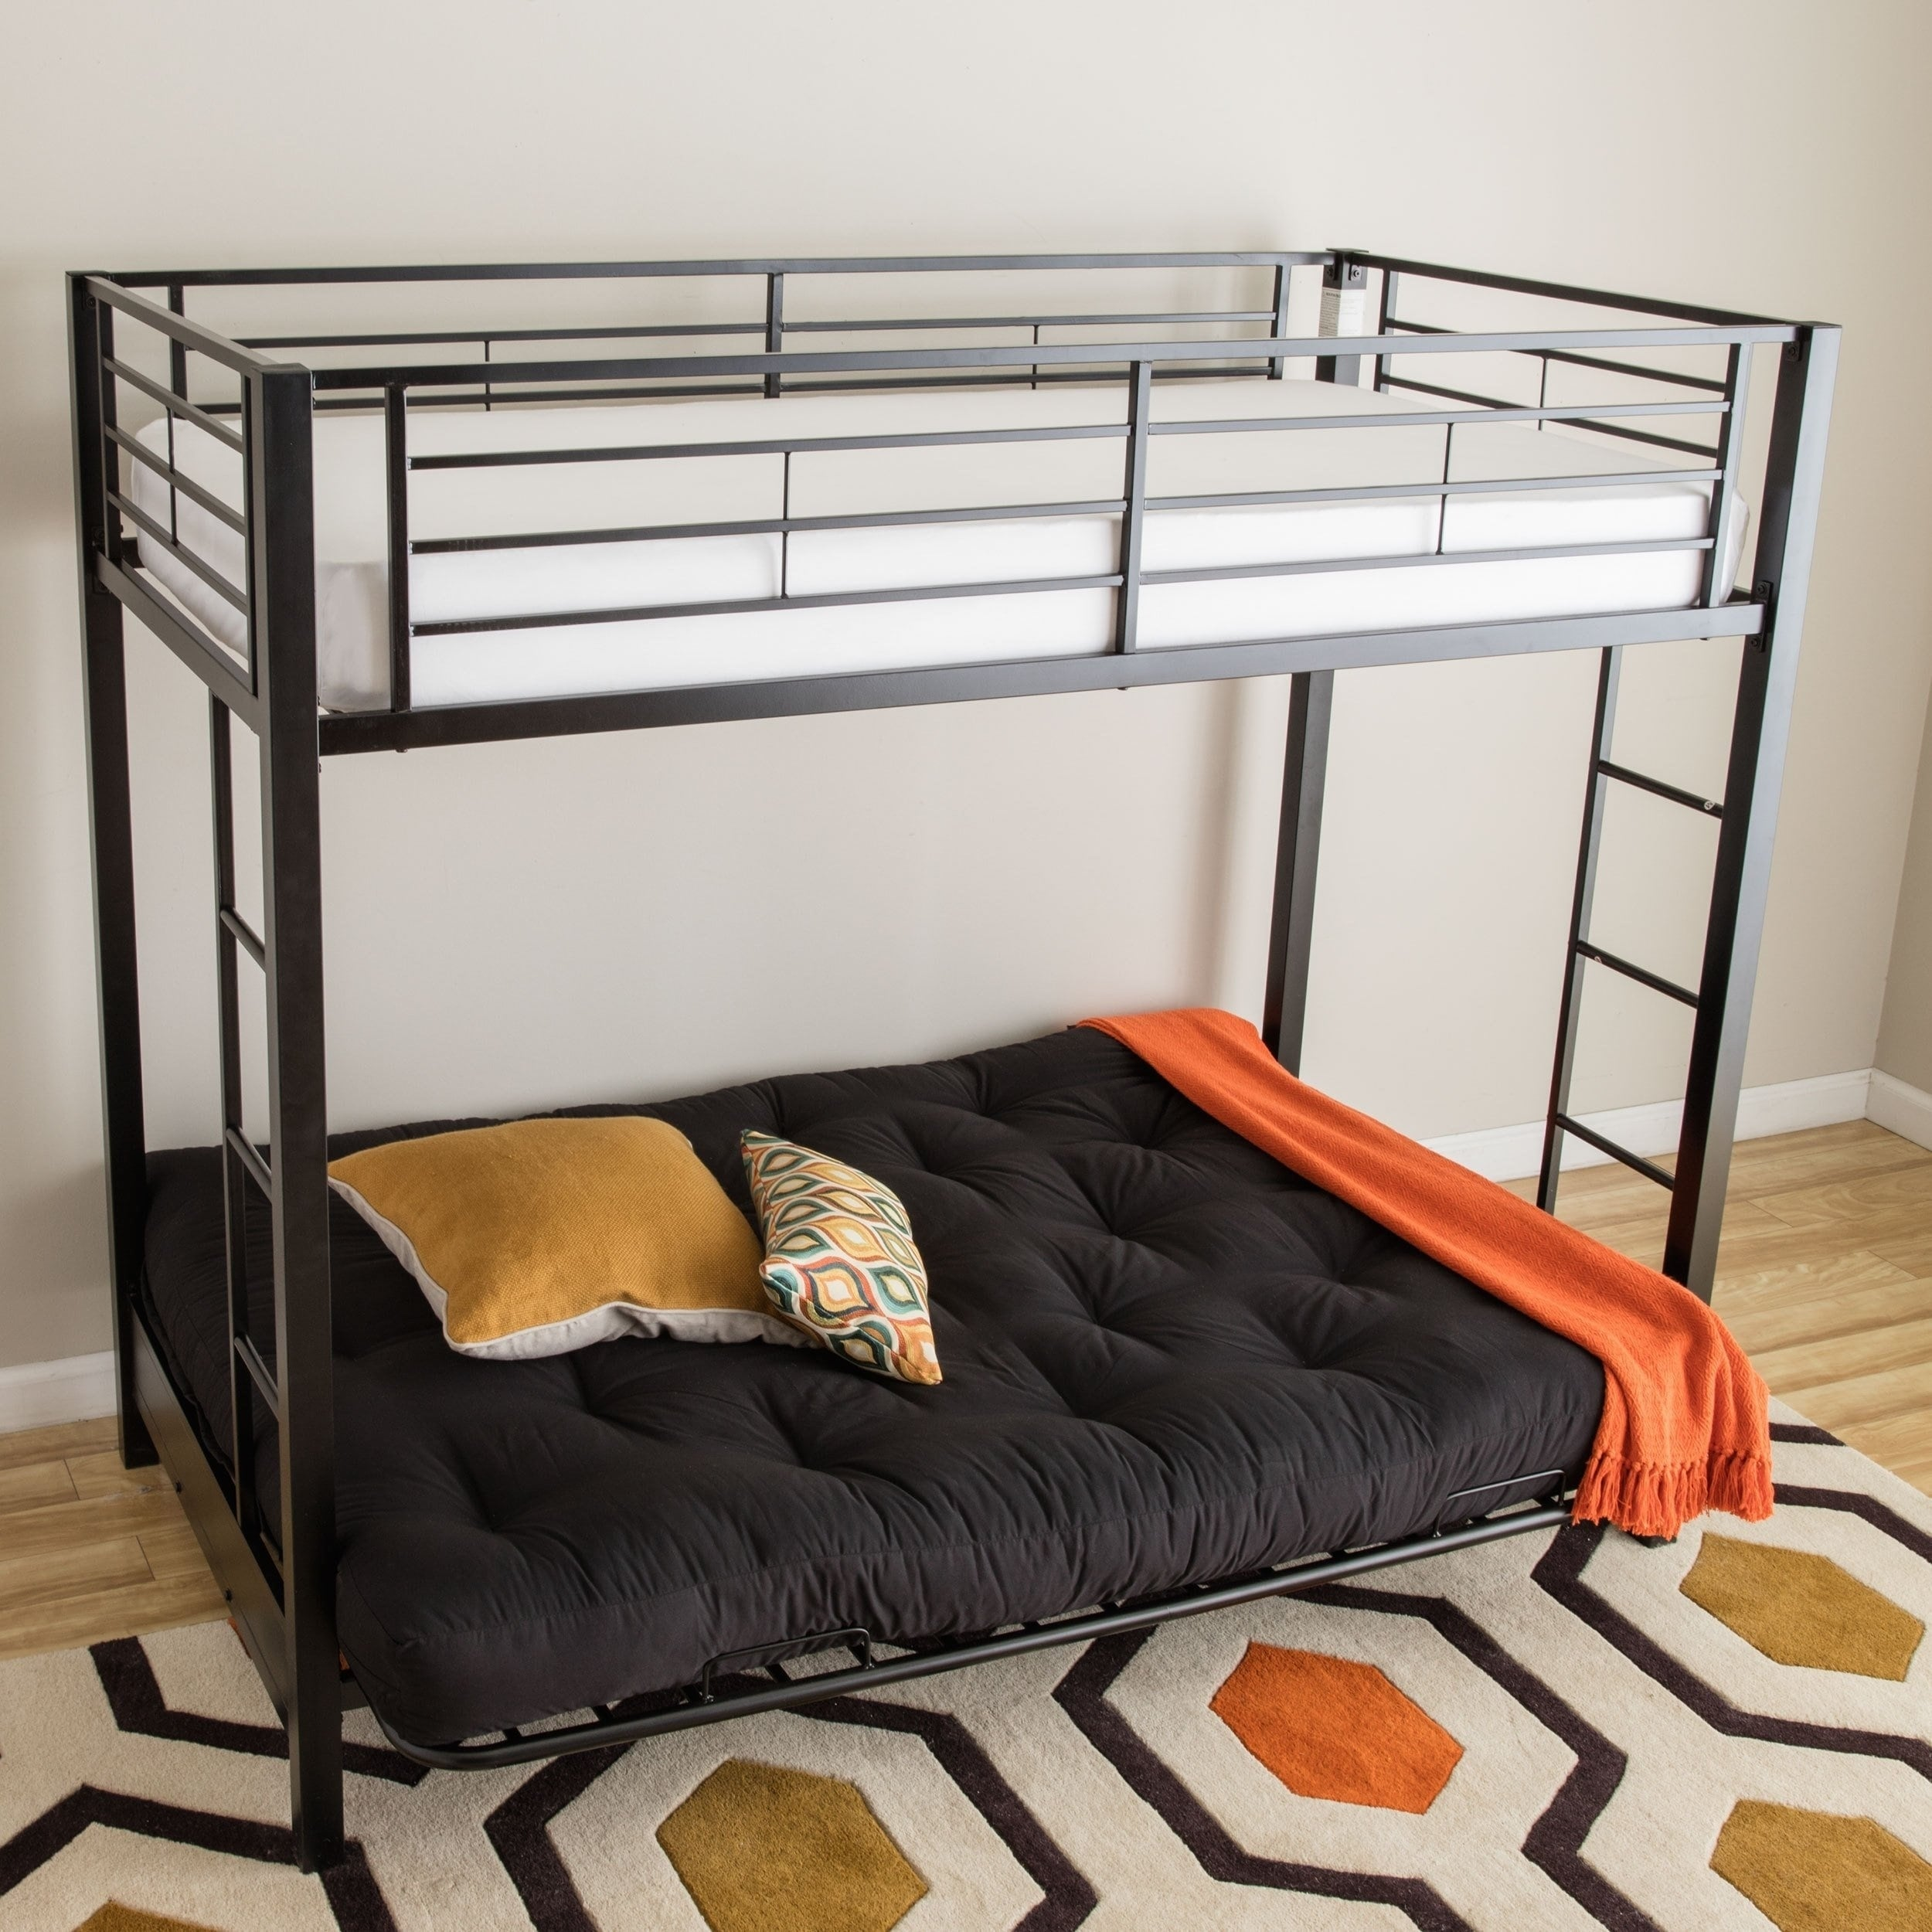 Shop Taylor   Olive Tussock Black Steel Bunk Bed and Futon - On Sale - Free  Shipping Today - Overstock - 21906971 372d2d90e6